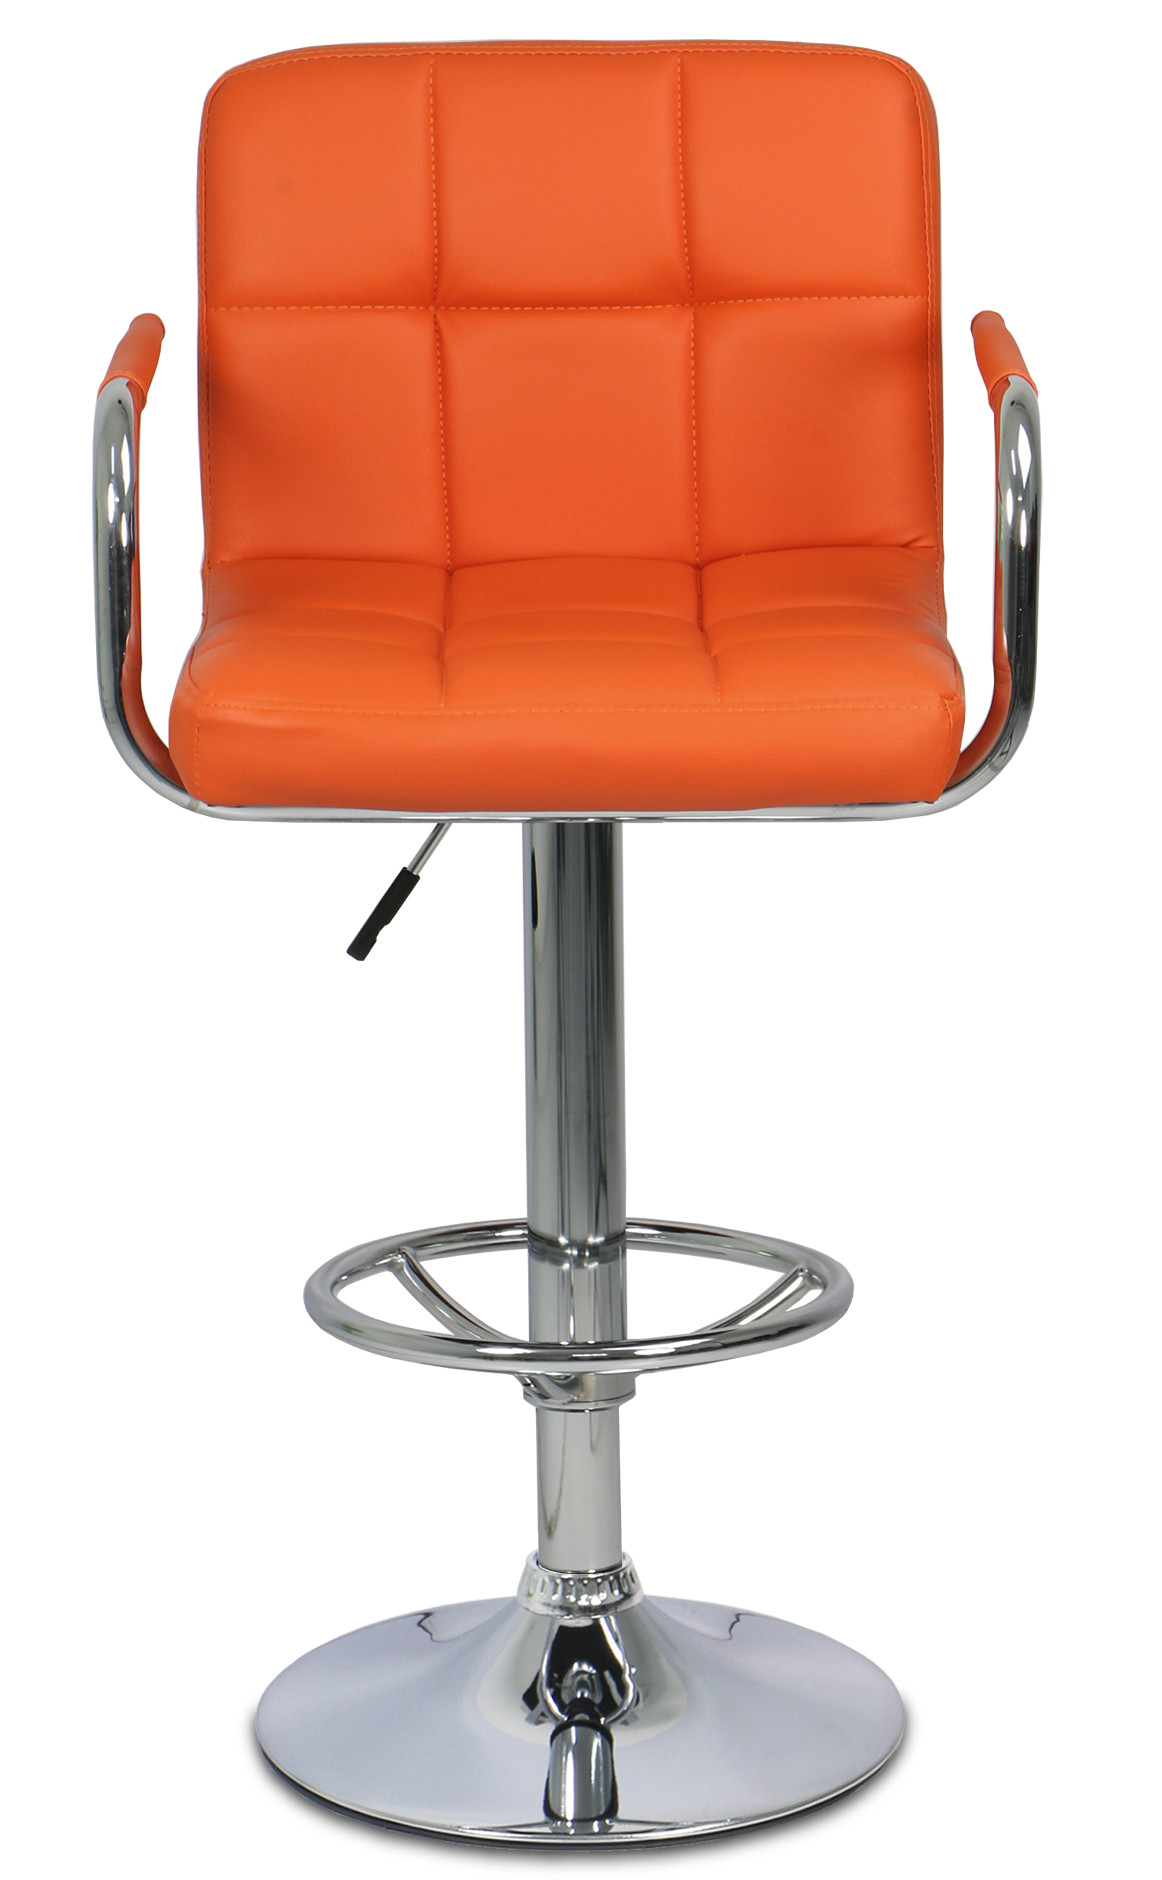 Living Room Stools Uk Valda Bar Stool Orange Bar Stools Living Room